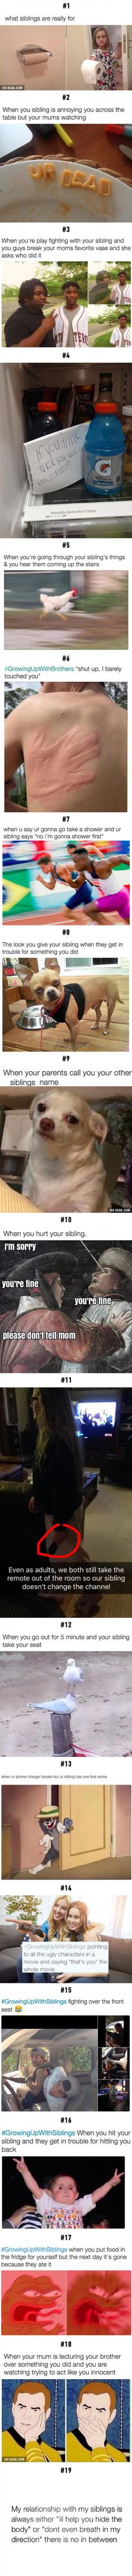 19 Perks Of Having A Sibling